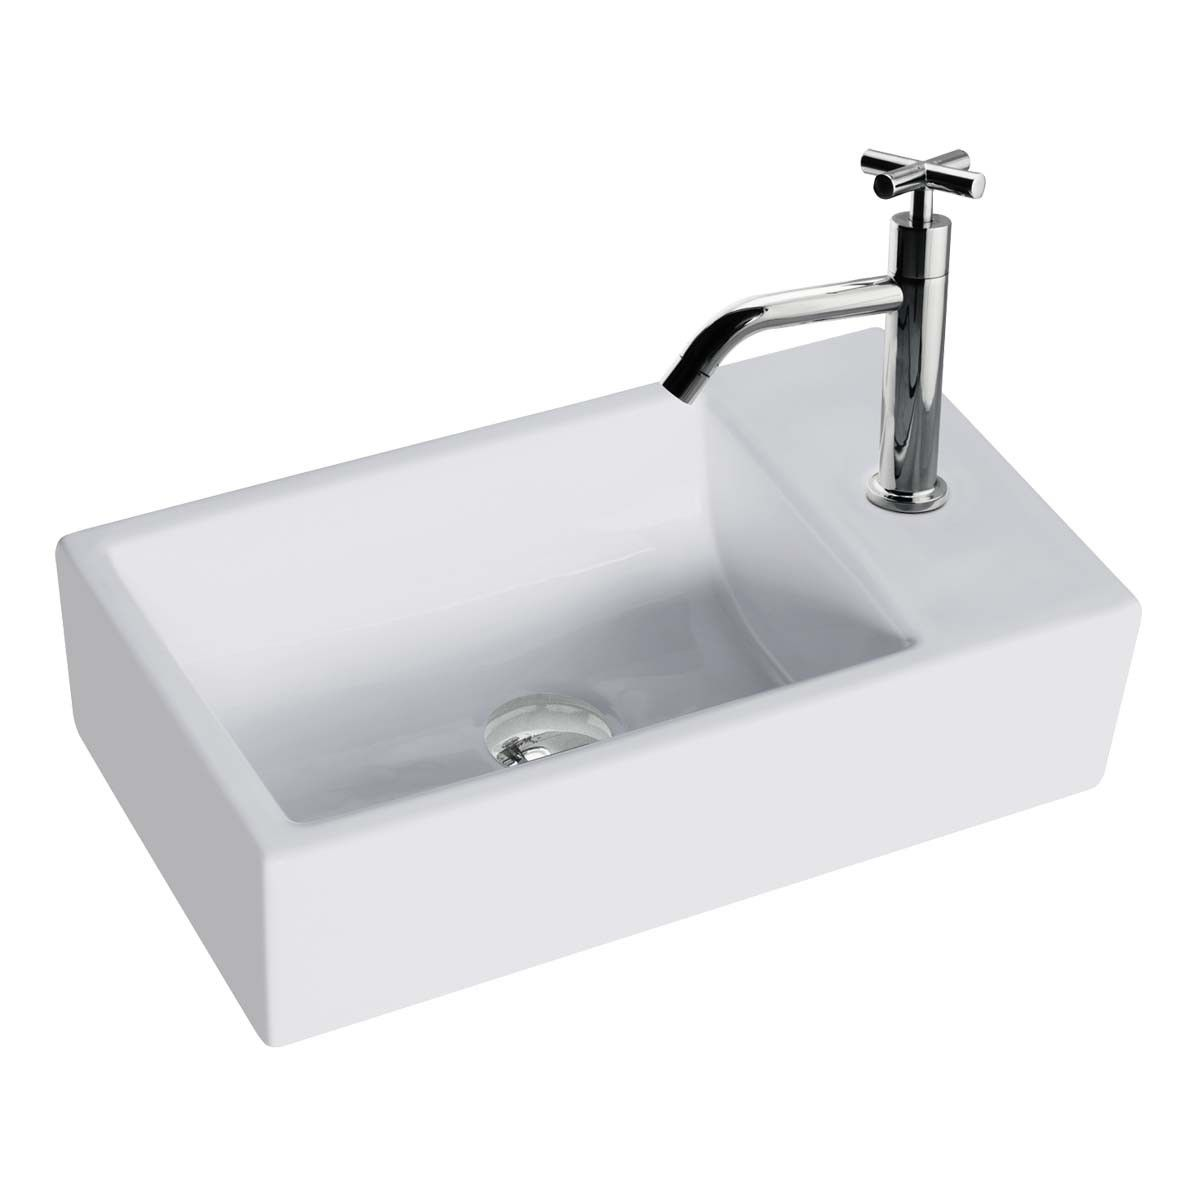 Small white vessel sink vitreous china rectangle scratch and stain